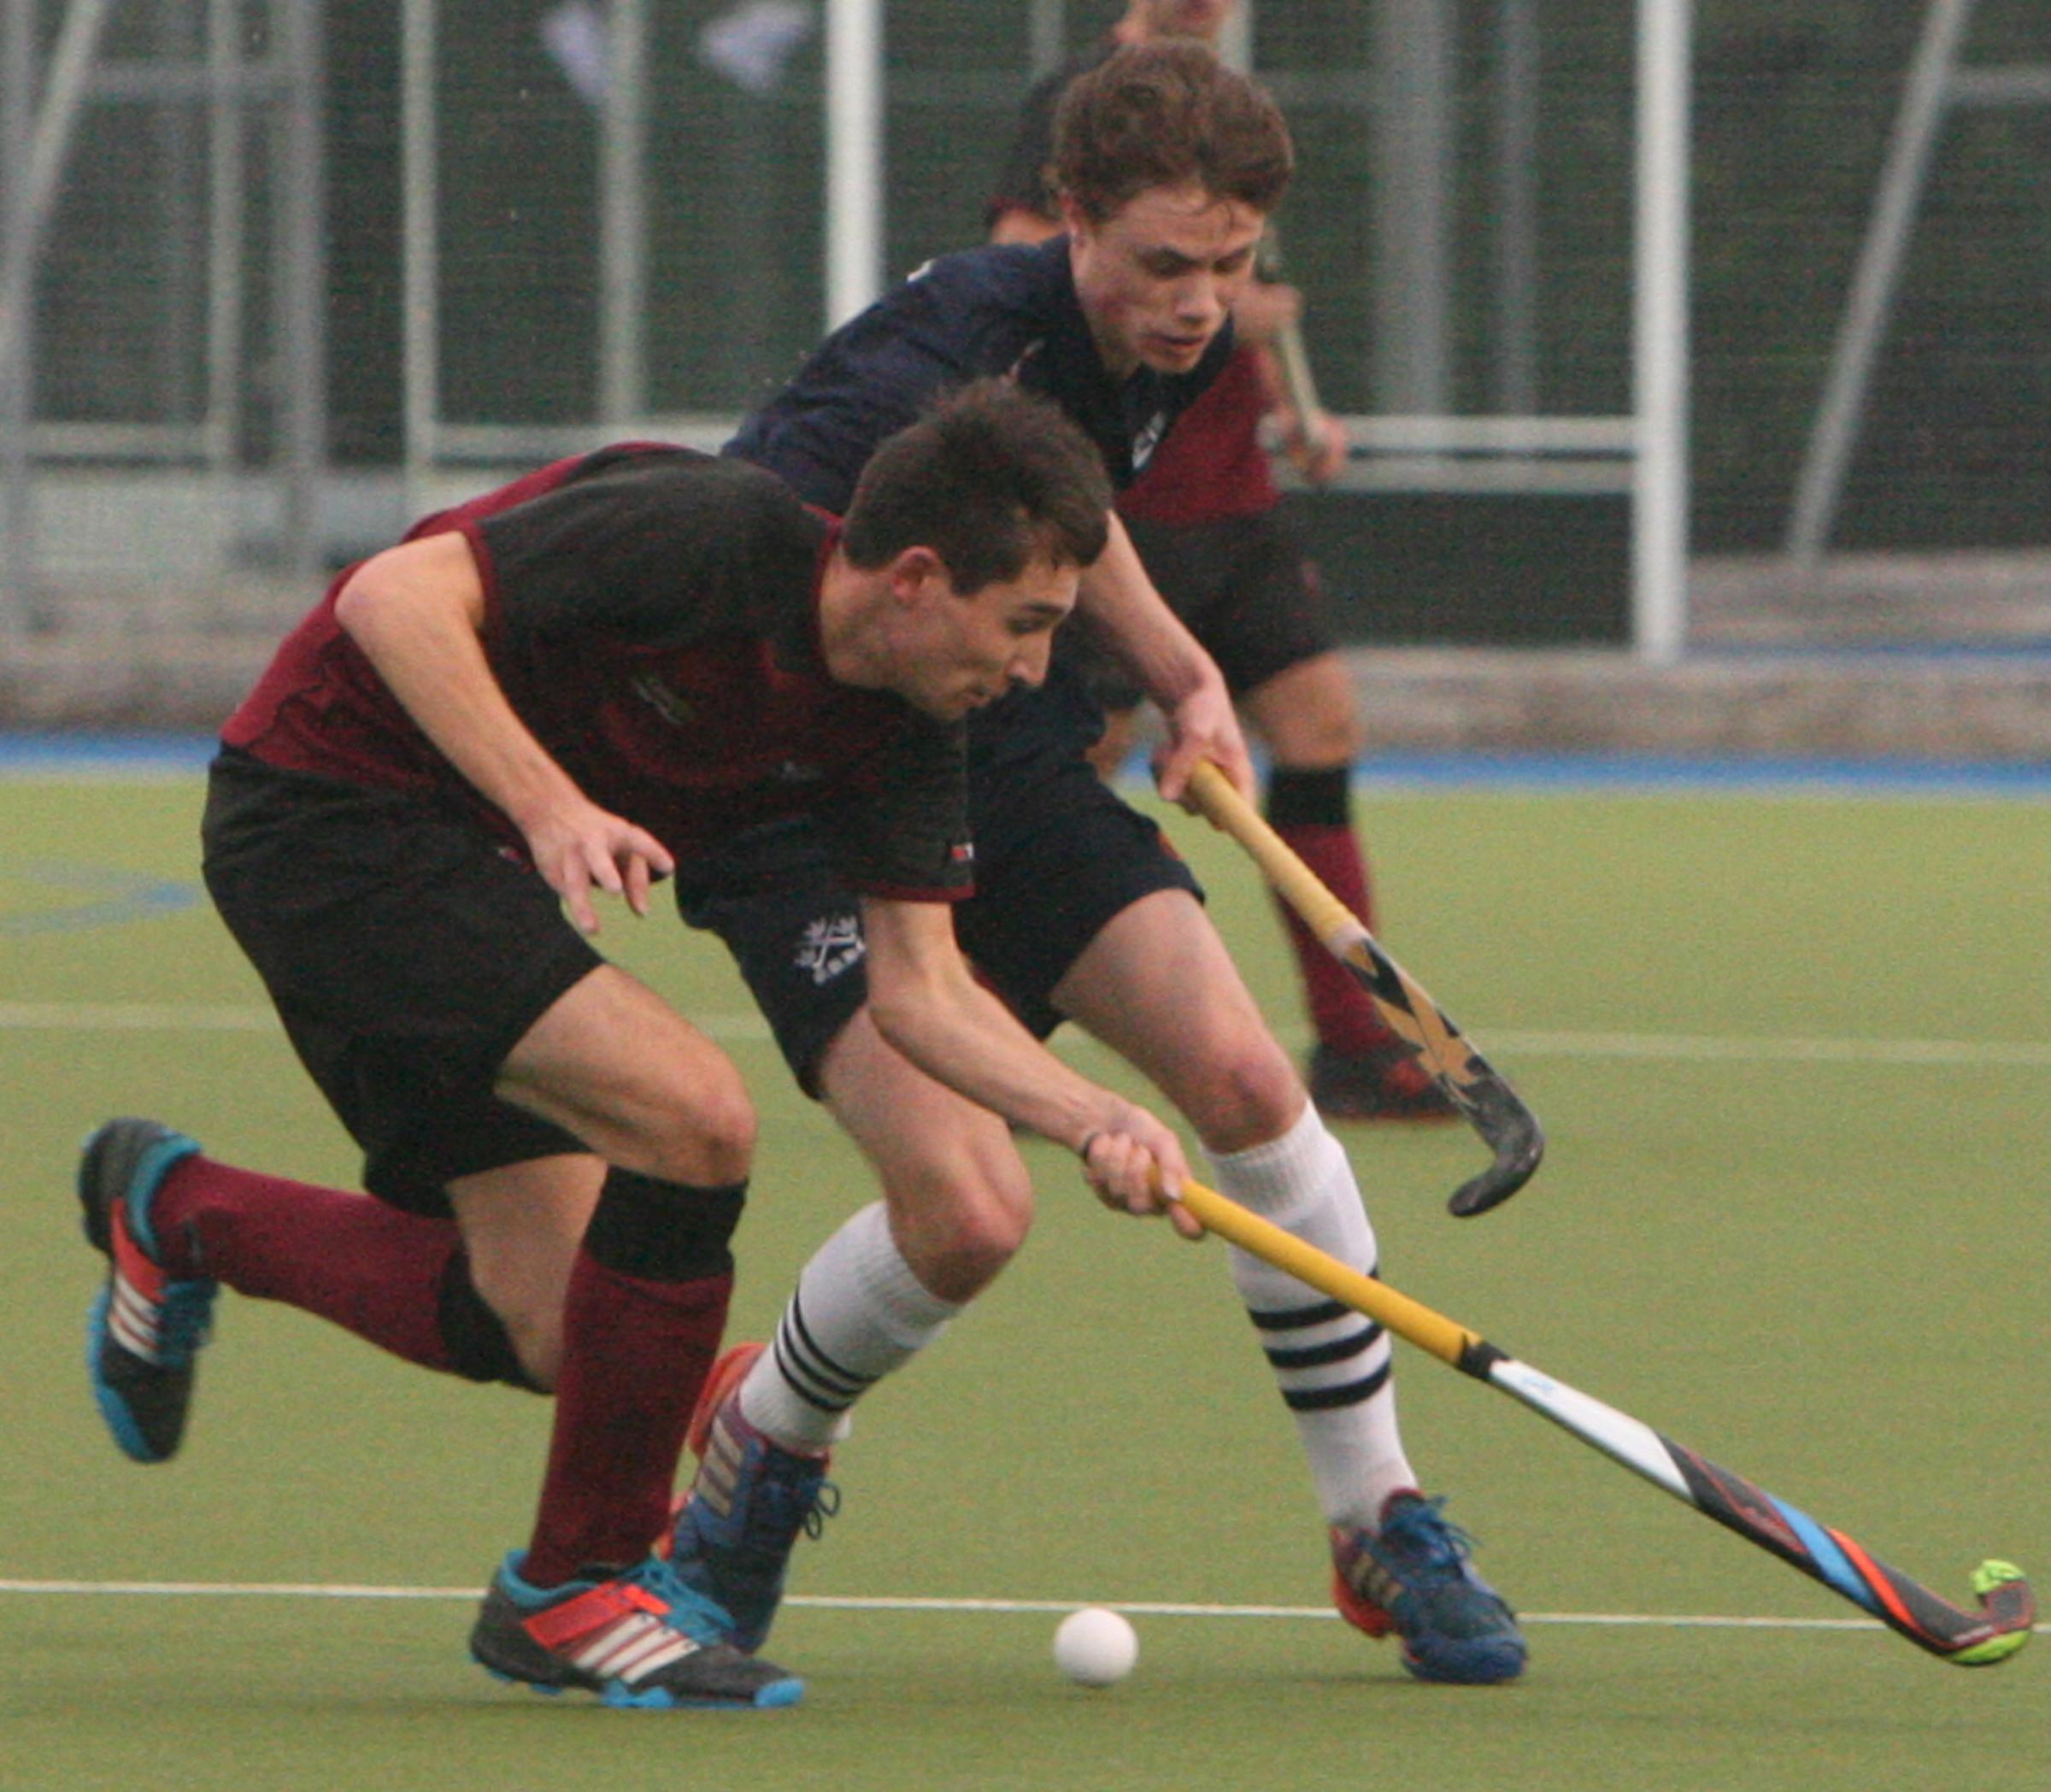 ON TARGET: Rob Dunnill (front) scored a rare goal for Oxford Hawks in their 4-1 victory over Henley